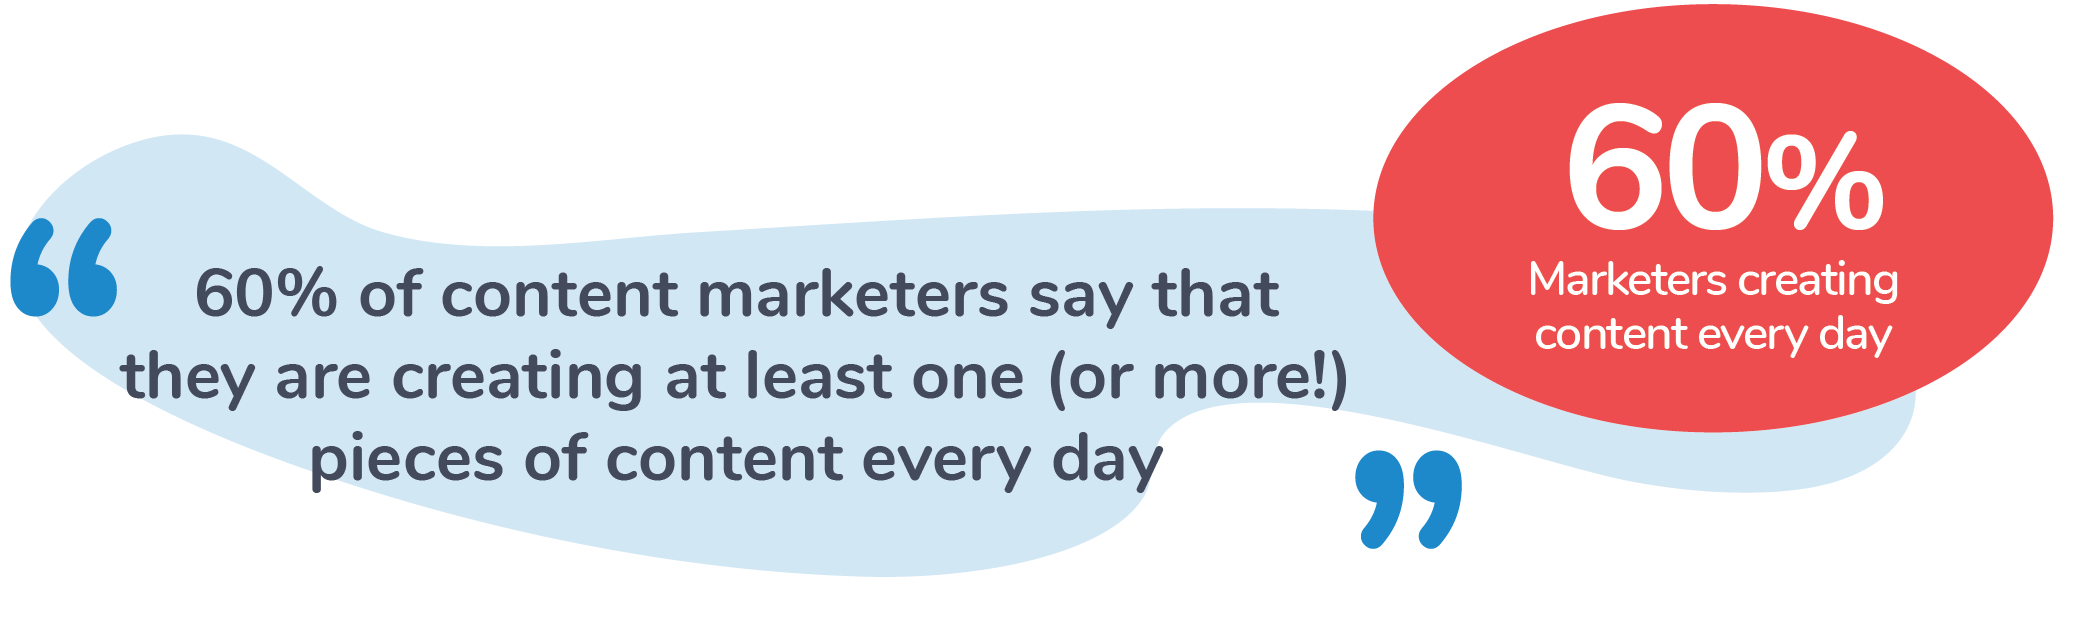 Marketers create content every day